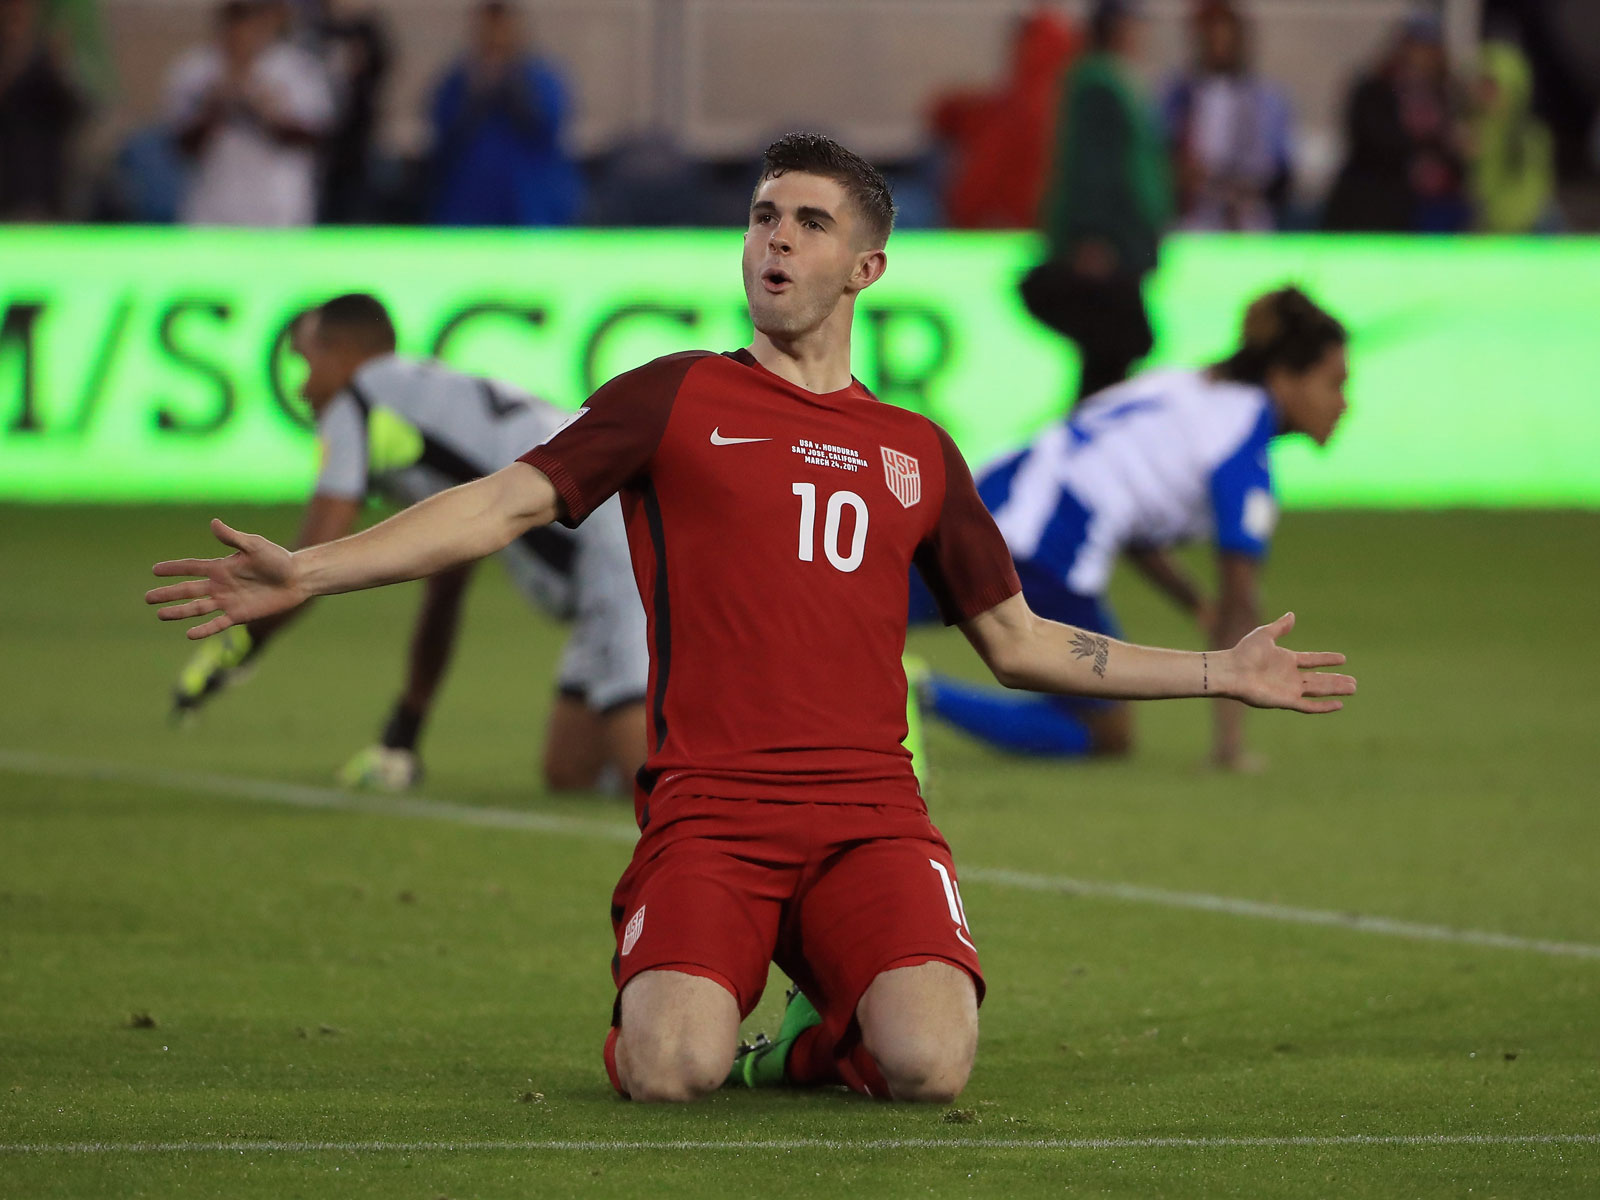 Christian Pulisic celebrates a World Cup qualifying goal vs. Honduras